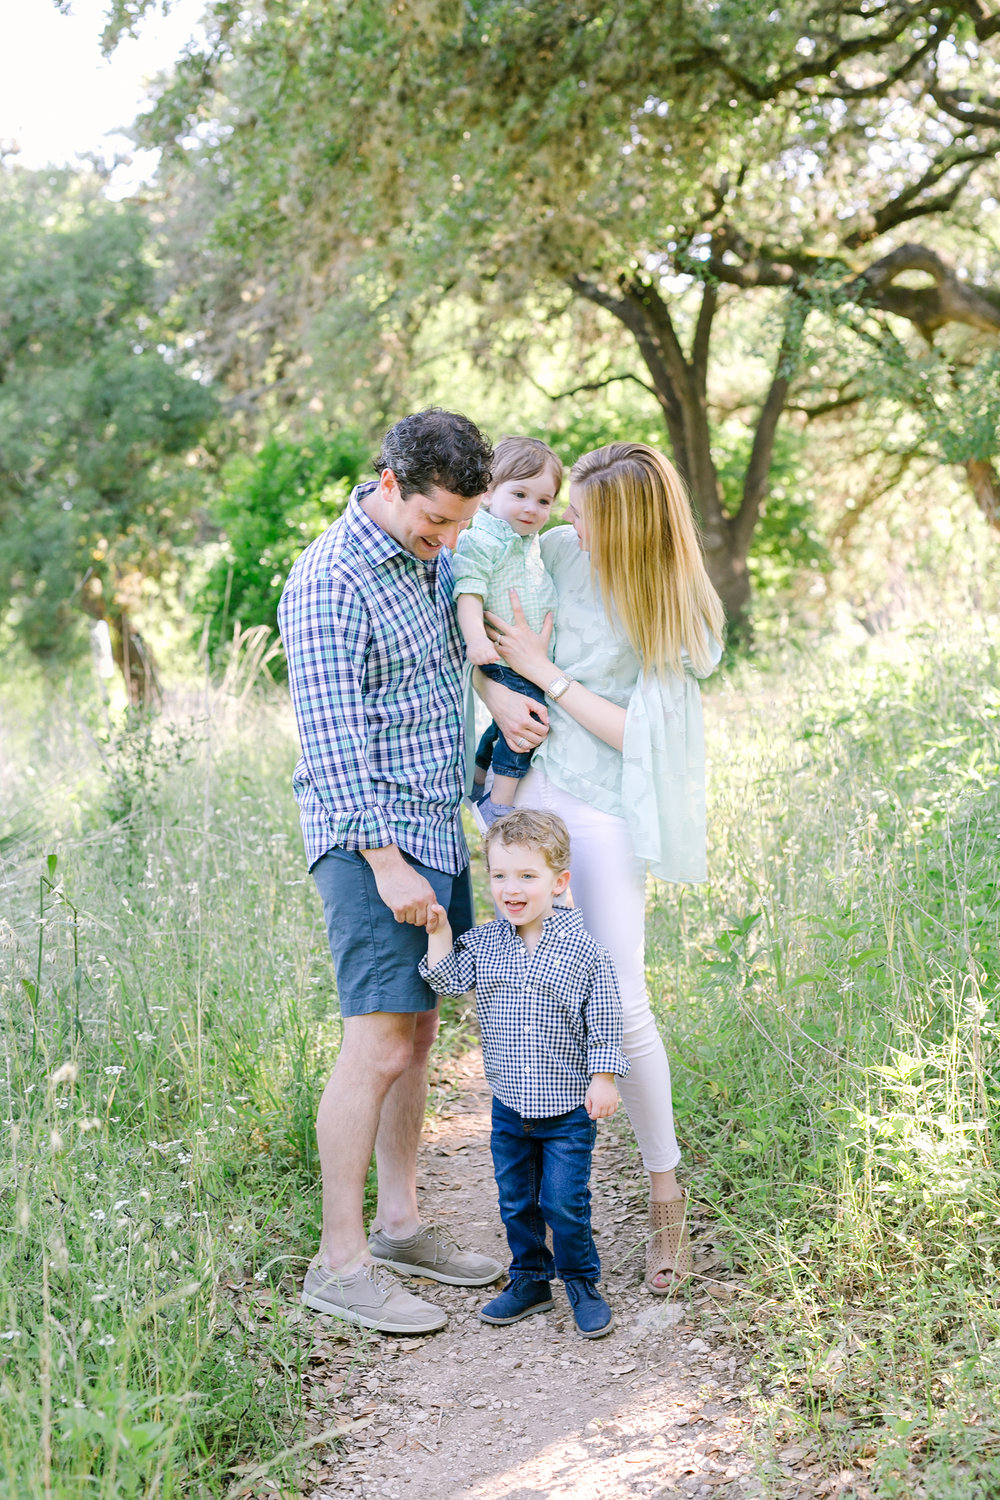 Austin_TX_Family_Photographer_KBP099.jpg